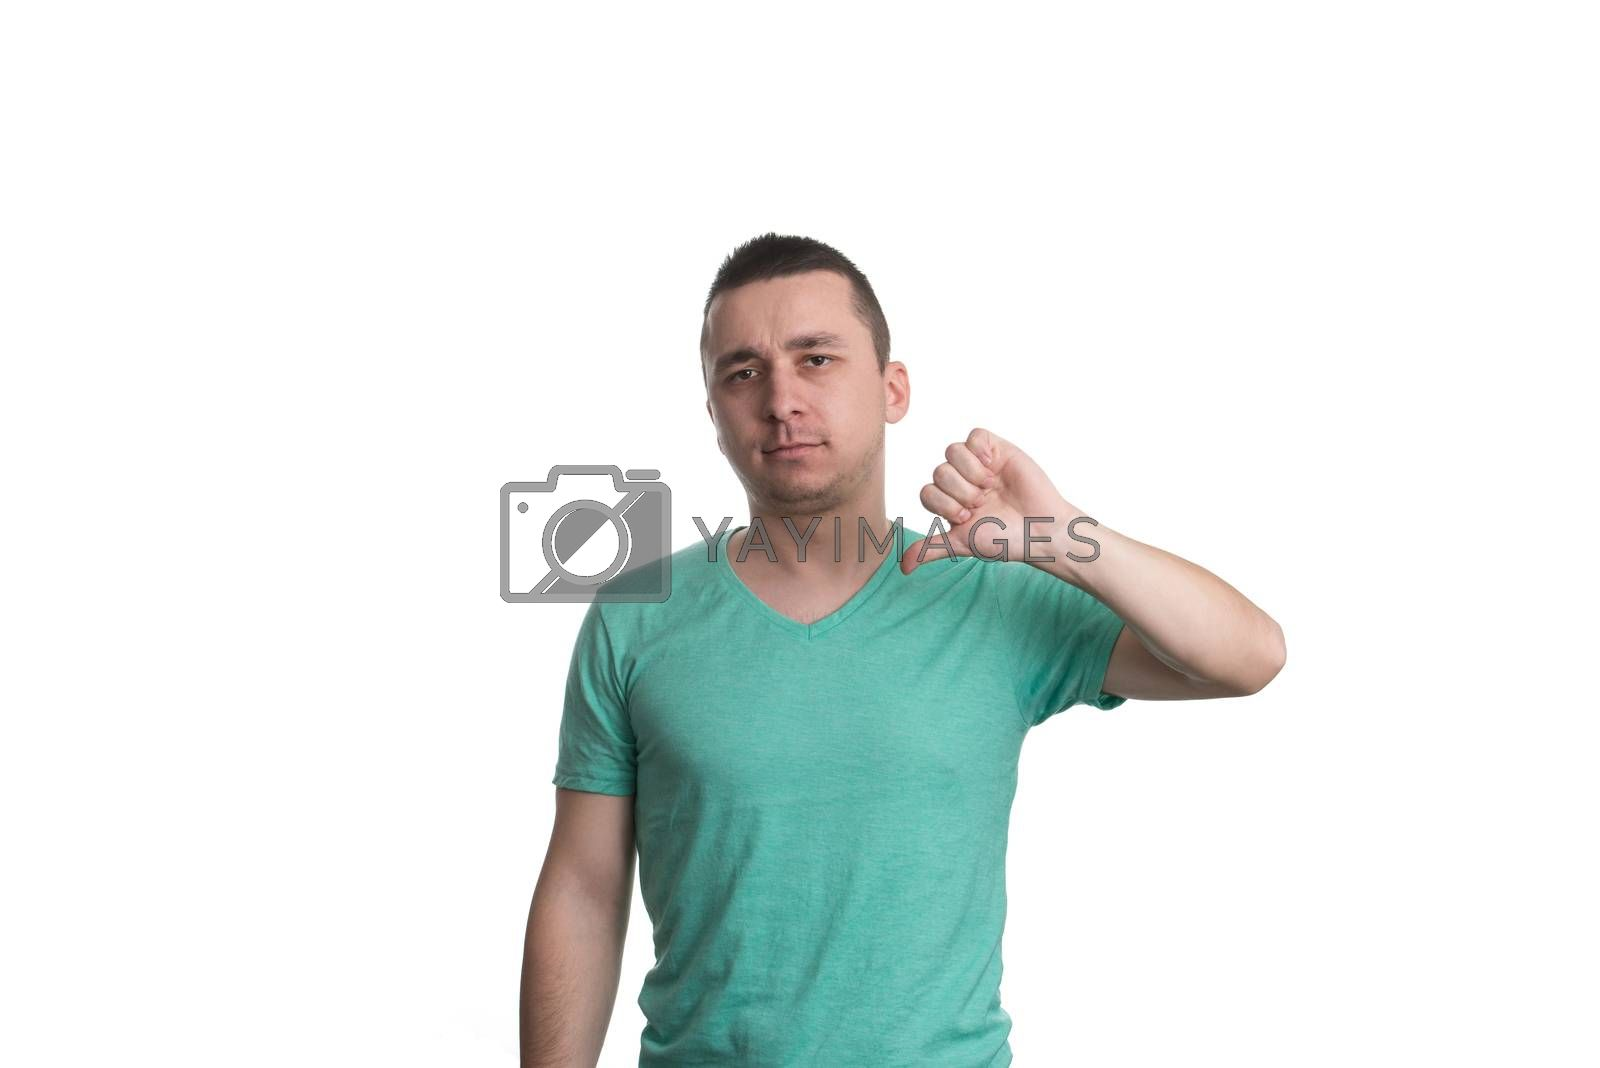 Young Man Lowered His Fist With The Thumb Down - Disgruntled Gesture - Isolated On White Background